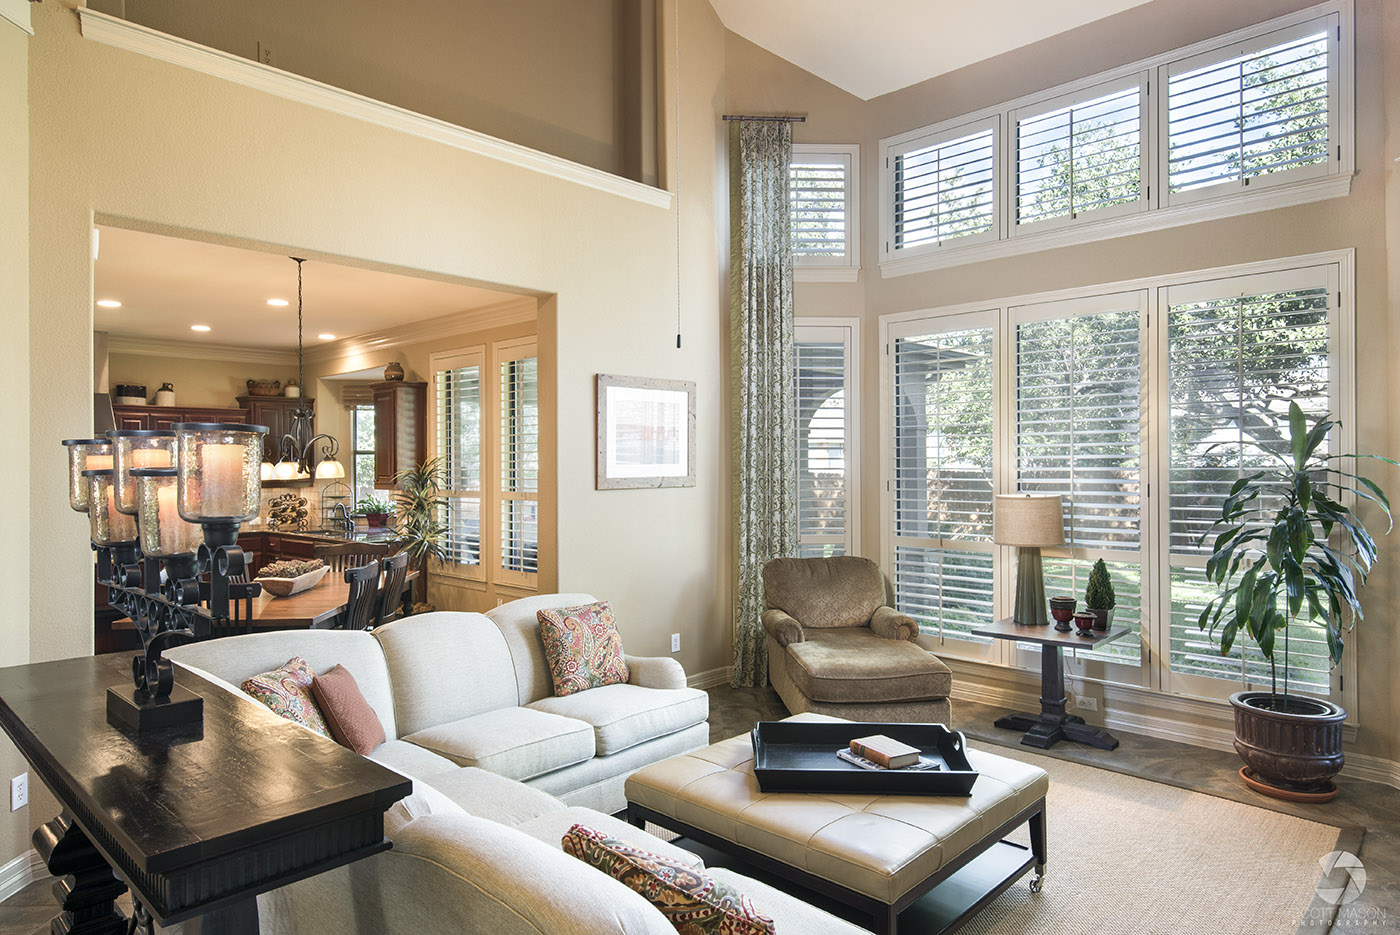 a real estate photo of a living room with large windows